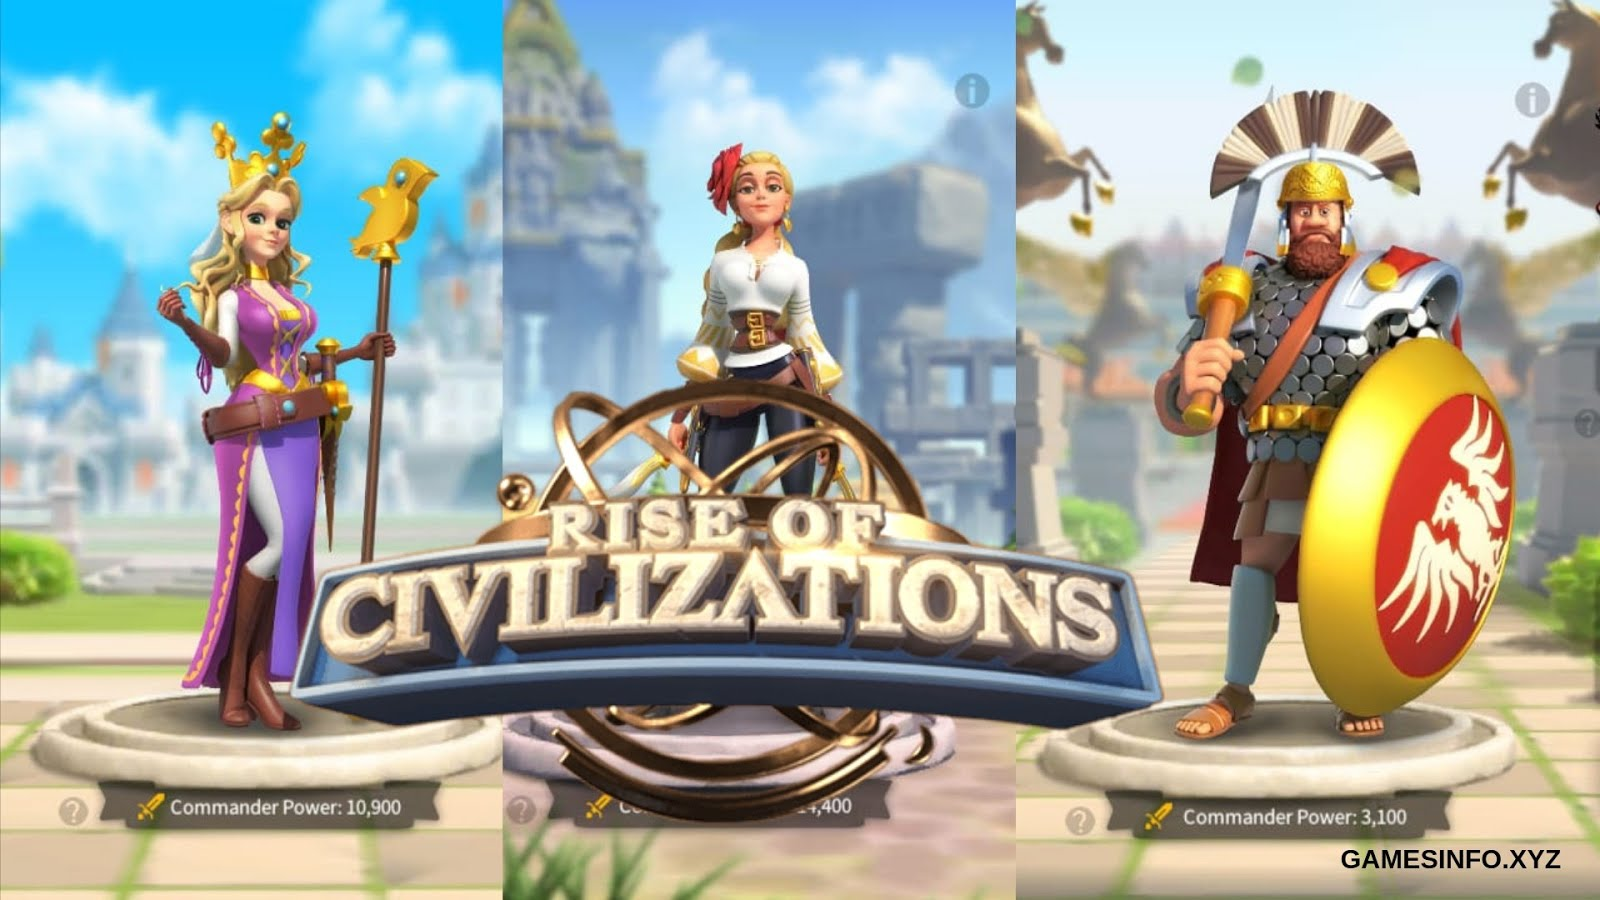 Best Free To Play Gathering Commanders Rise Of Civilizations